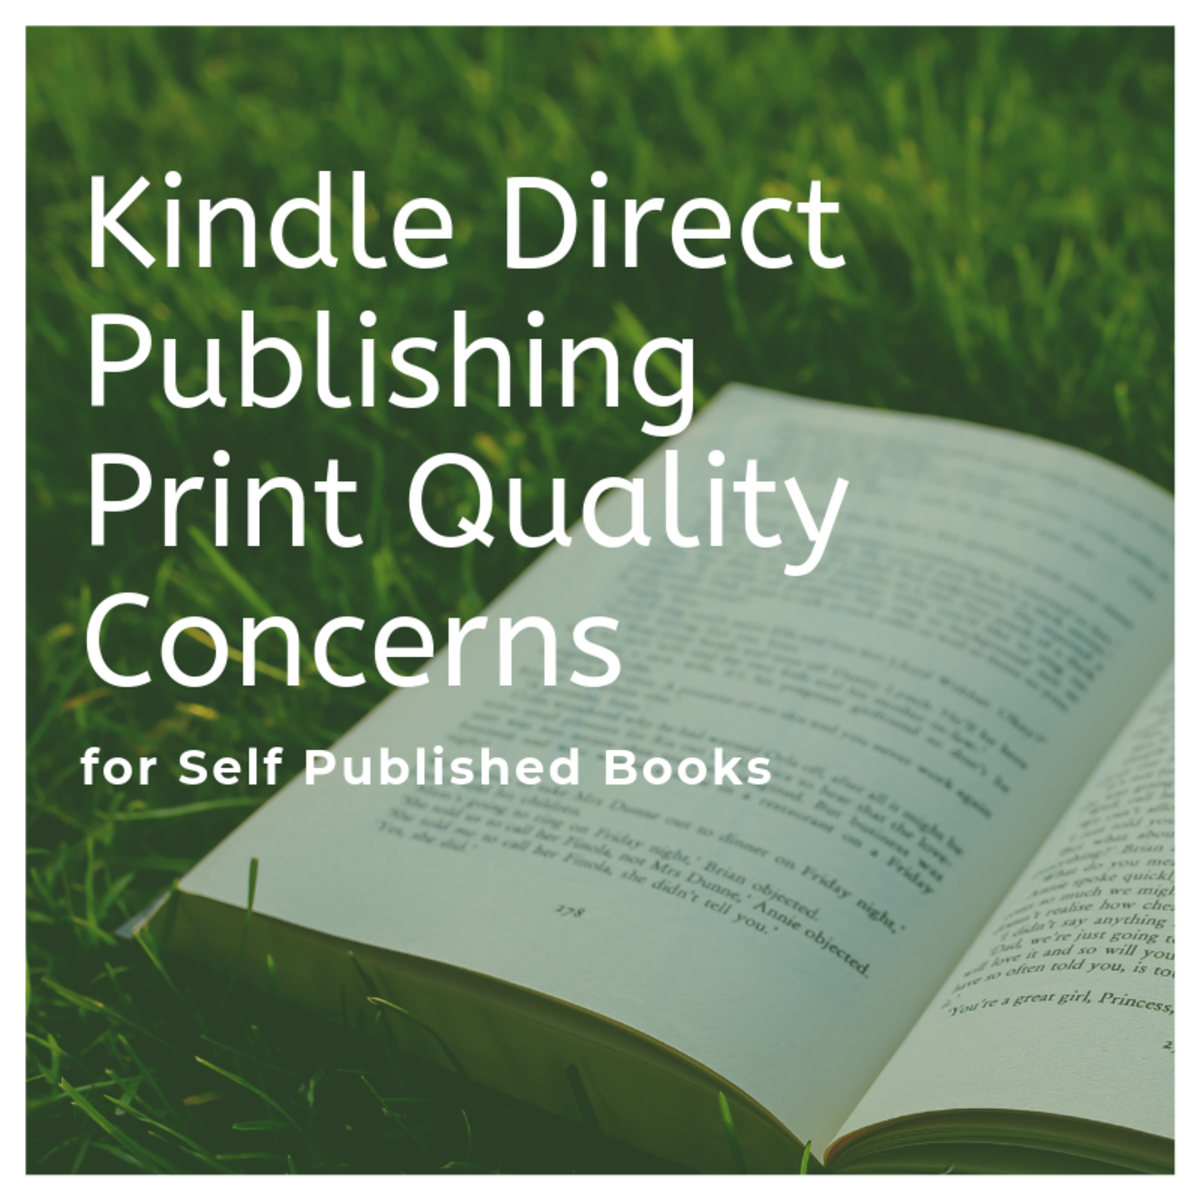 Print Quality Concerns About Self Published Books from Kindle Direct Publishing